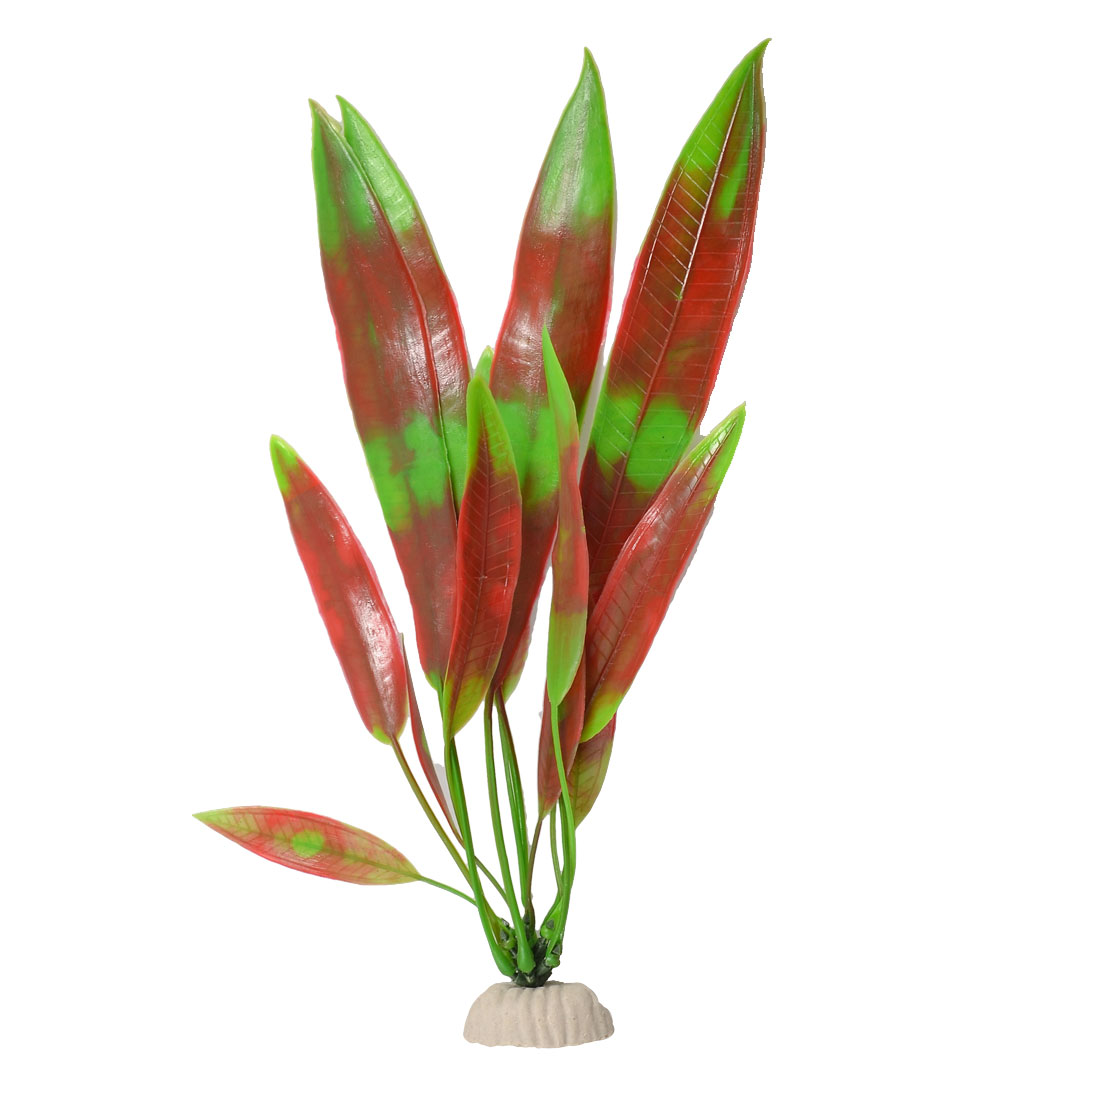 Red Green Slender Leaf Underwater Plastic Plant Aquarium Fish Tank Ornament